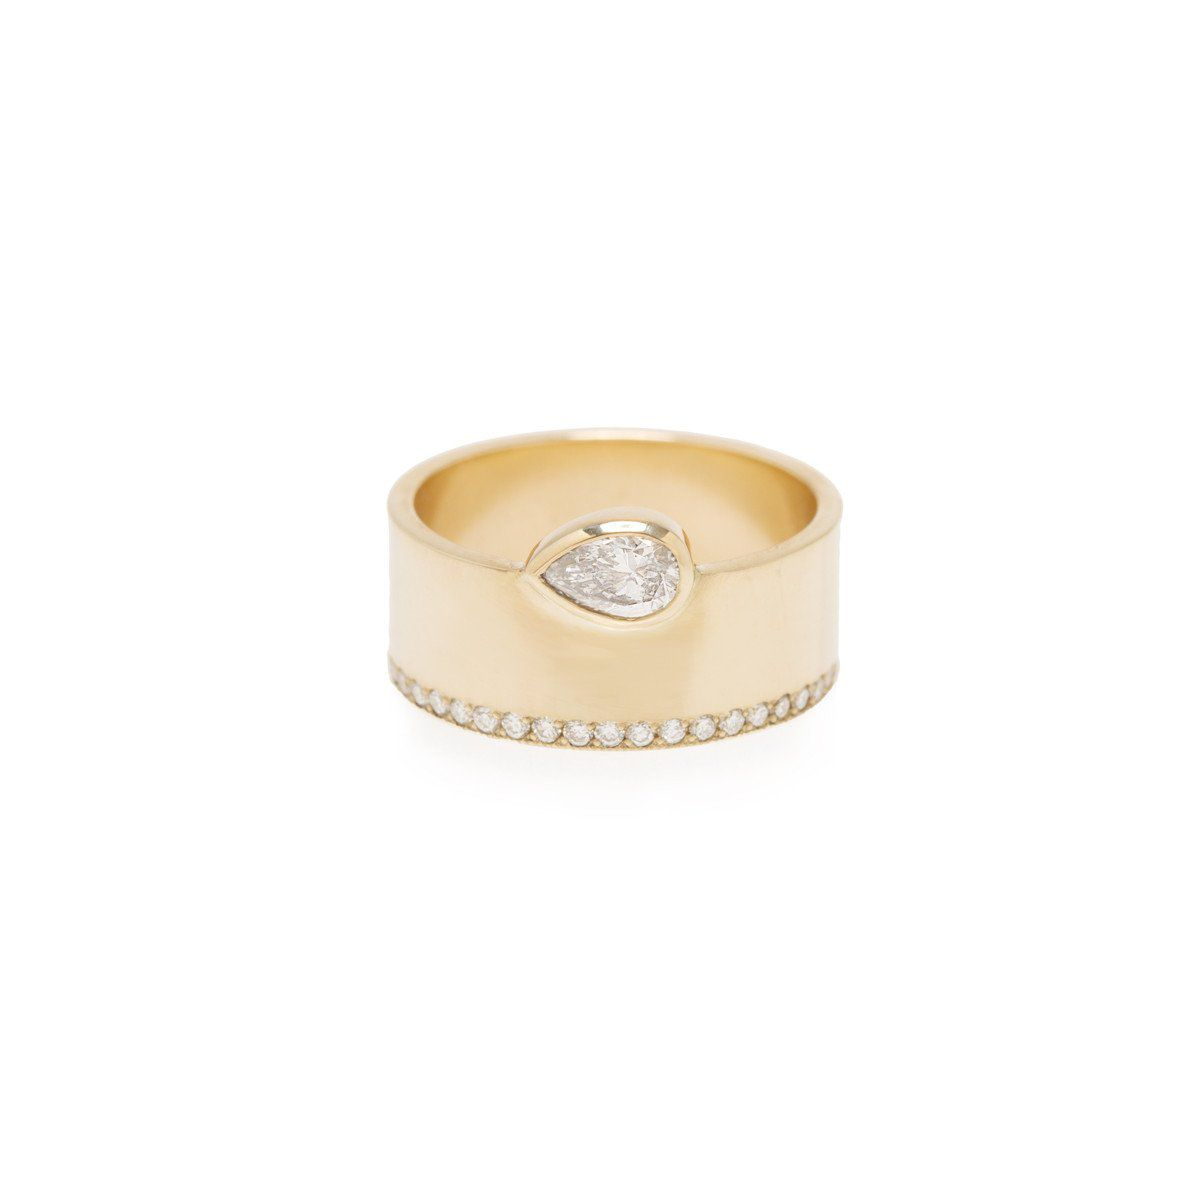 Pear diamond engagement ring with thick yellow gold band on a white background